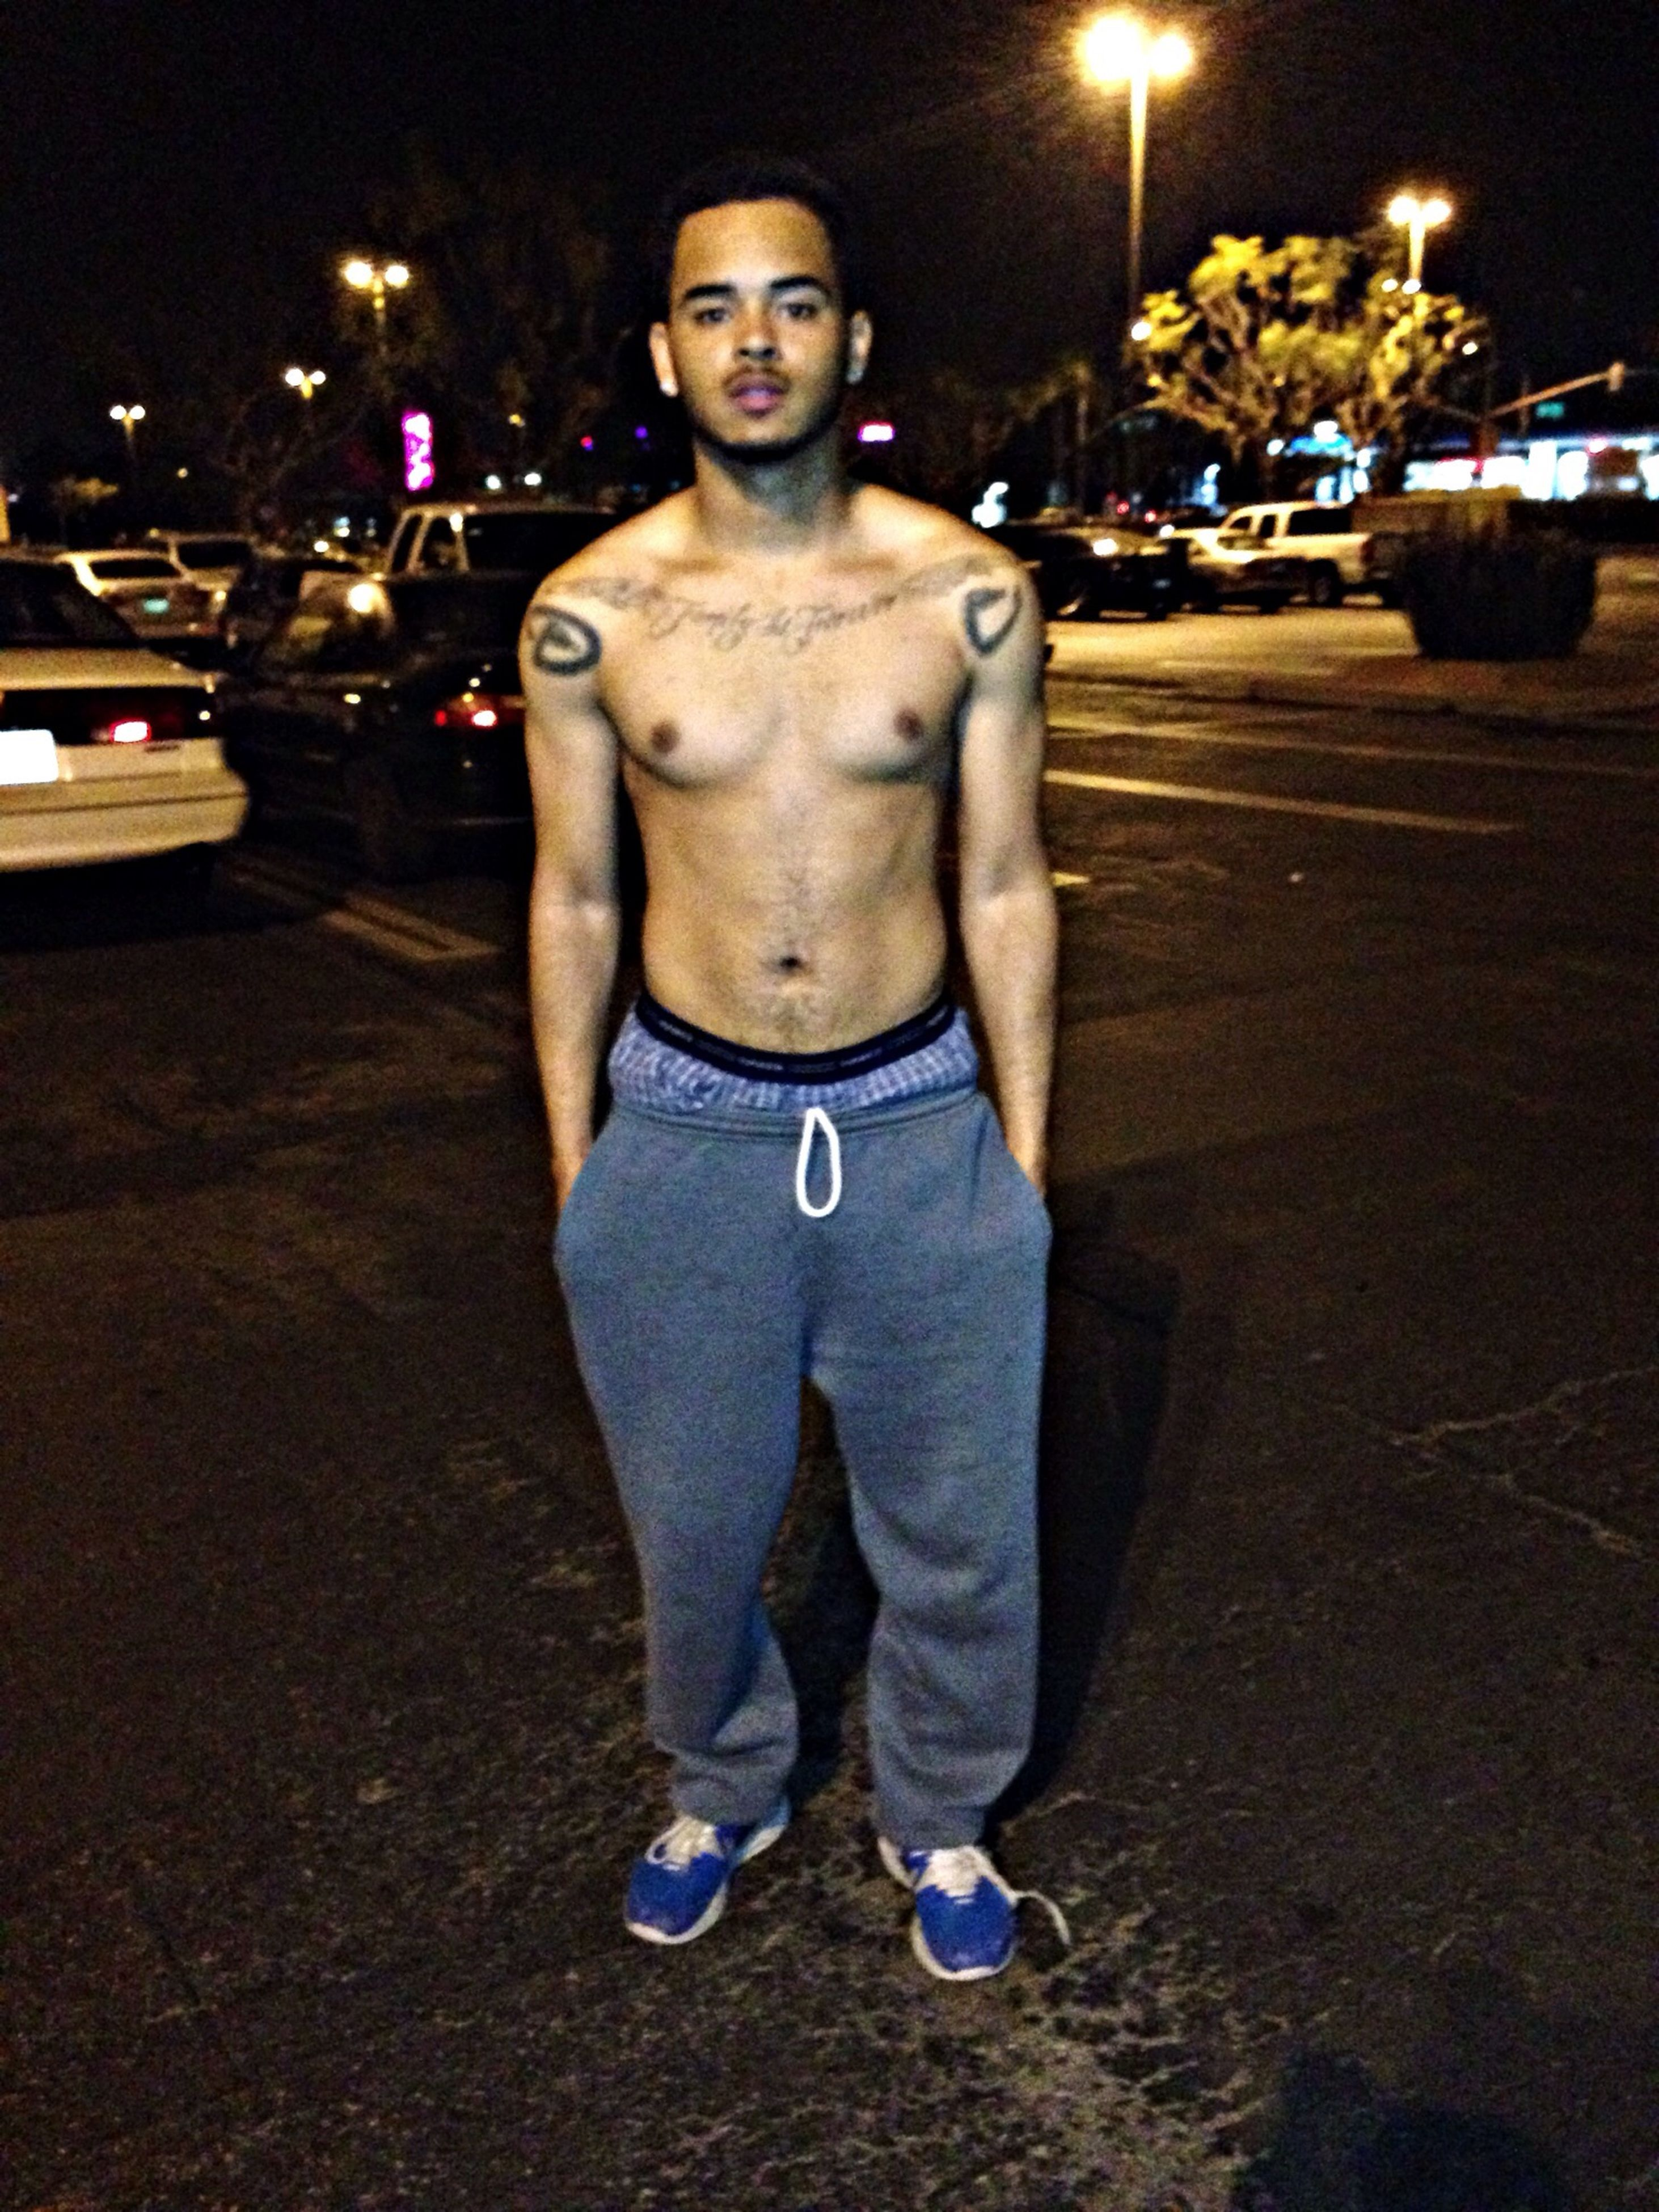 night, casual clothing, lifestyles, front view, full length, leisure activity, portrait, person, looking at camera, street, standing, illuminated, young adult, young men, incidental people, outdoors, human representation, holding